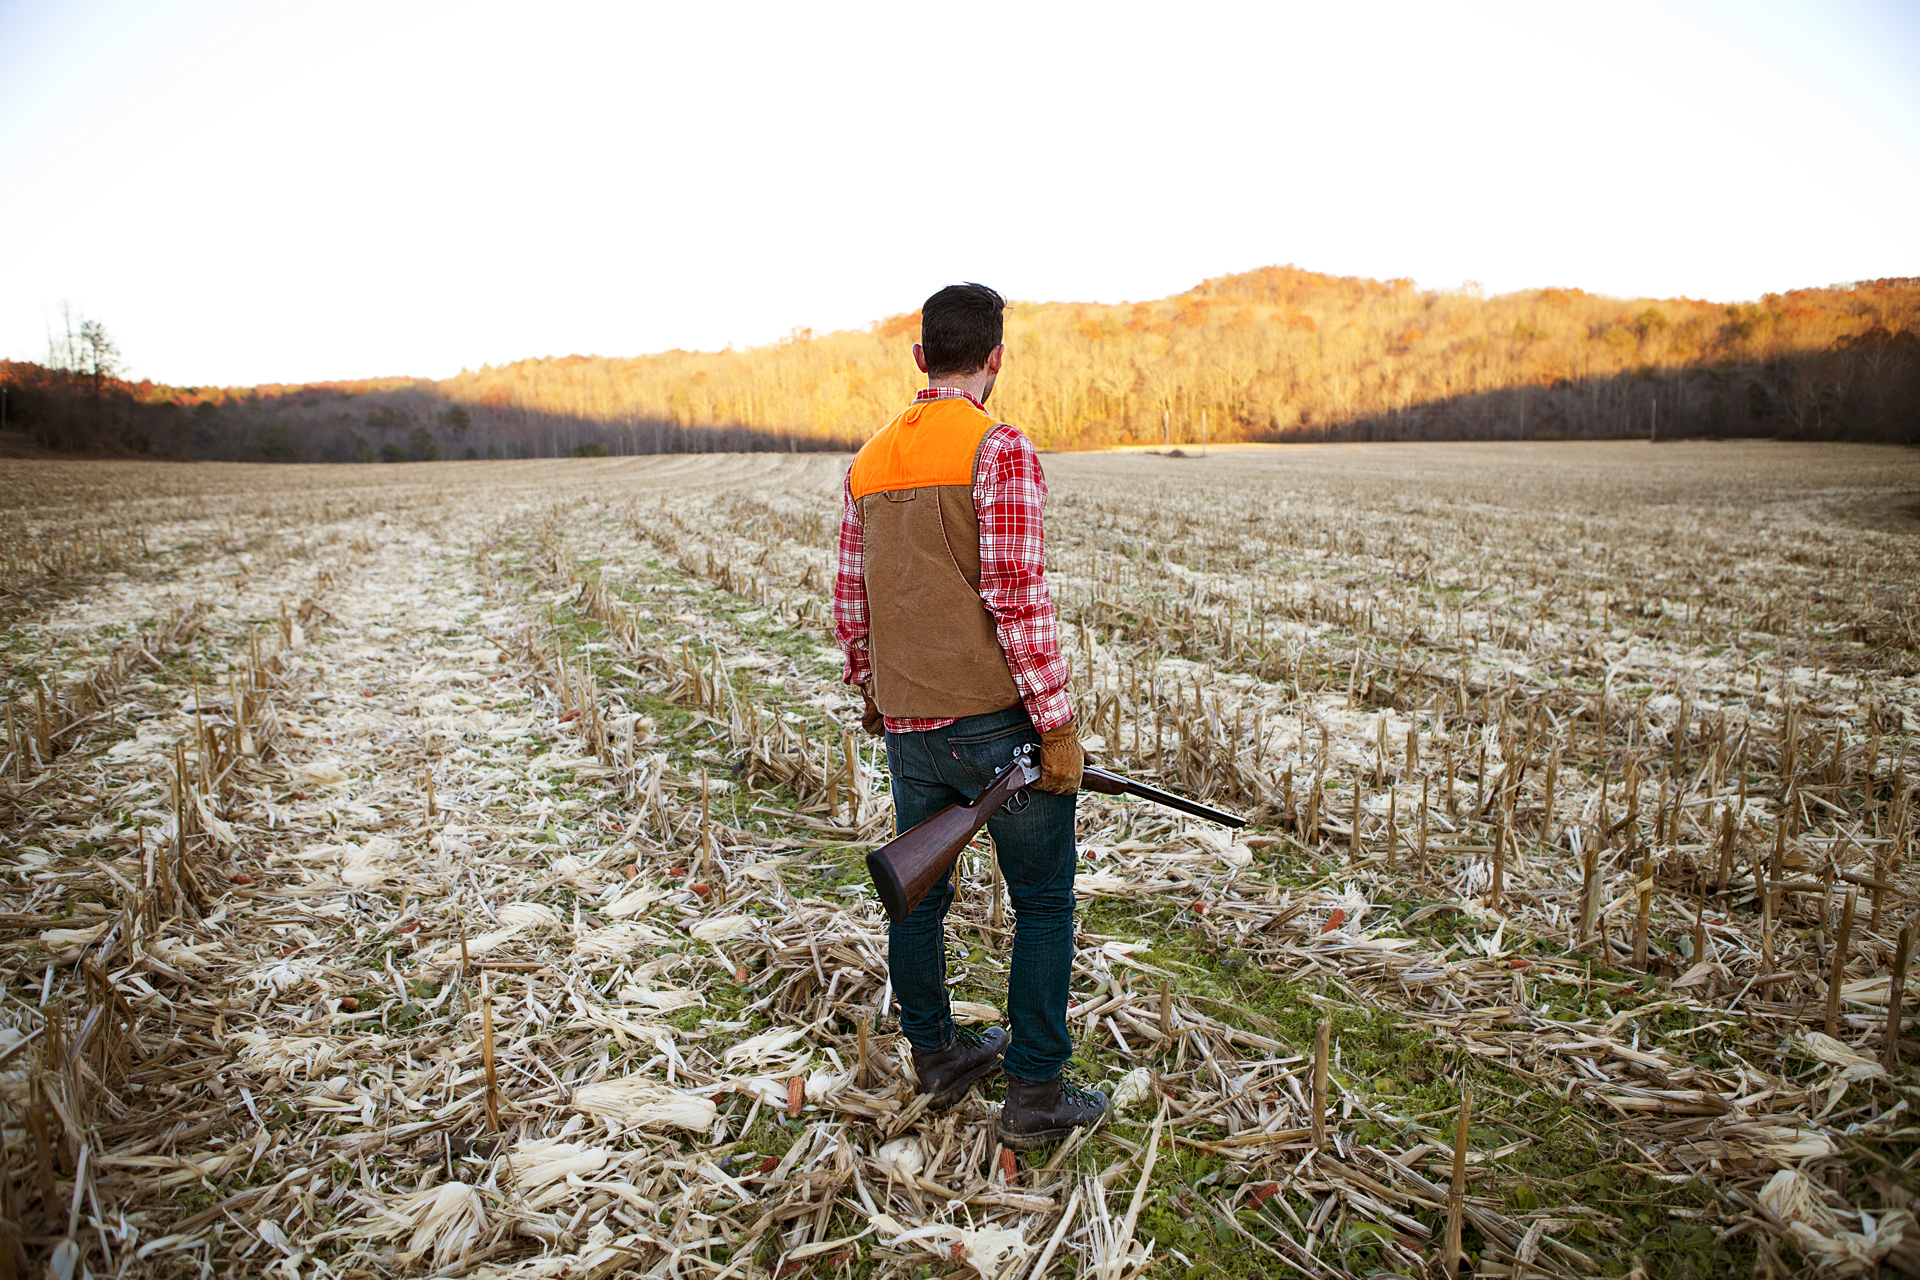 ADV007_Hunting_Mark_cornfield1.jpg